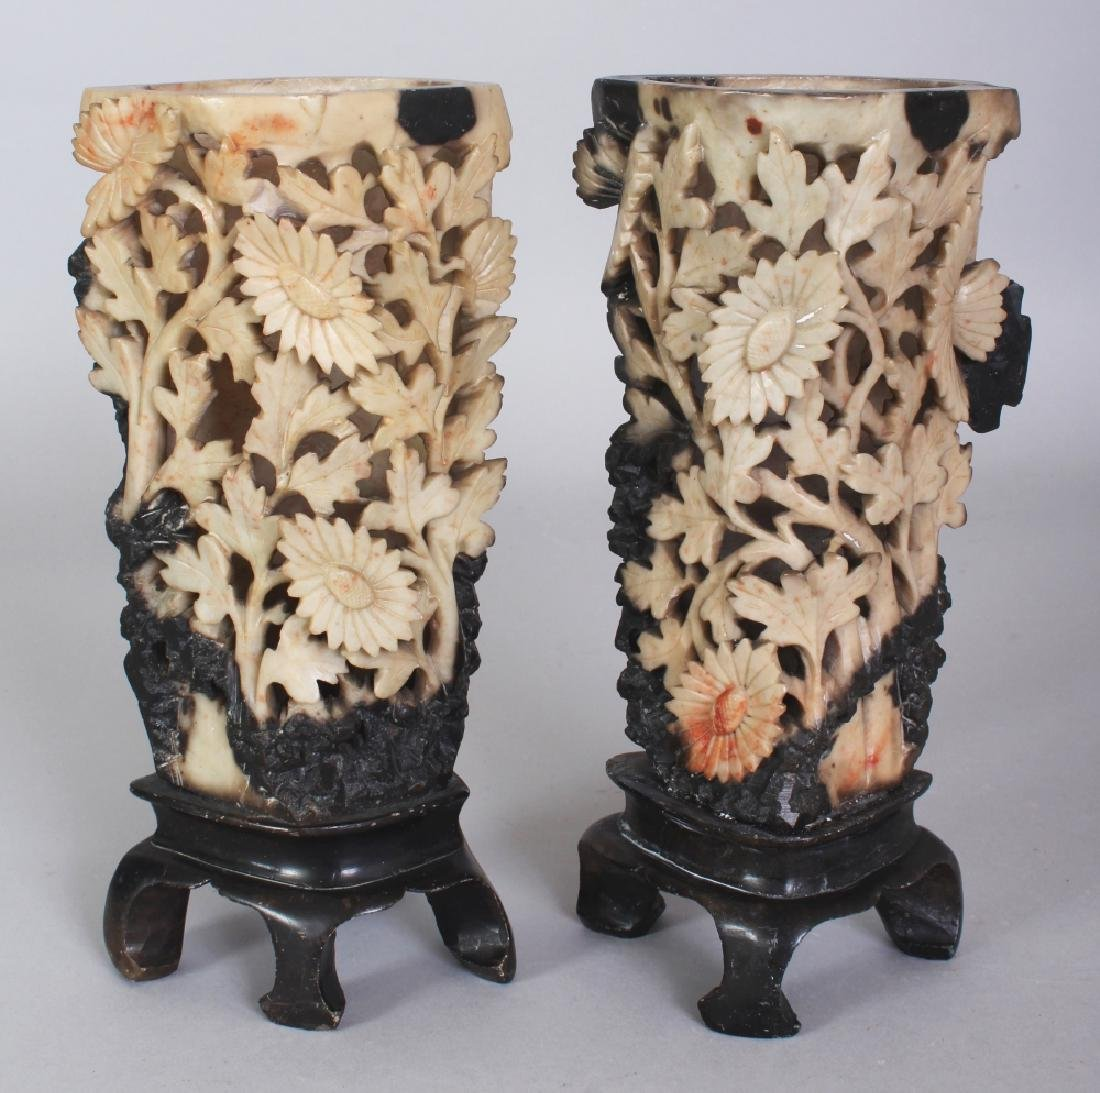 A PAIR OF 20TH CENTURY CHINESE PIERCED FLORAL SOAPSTONE